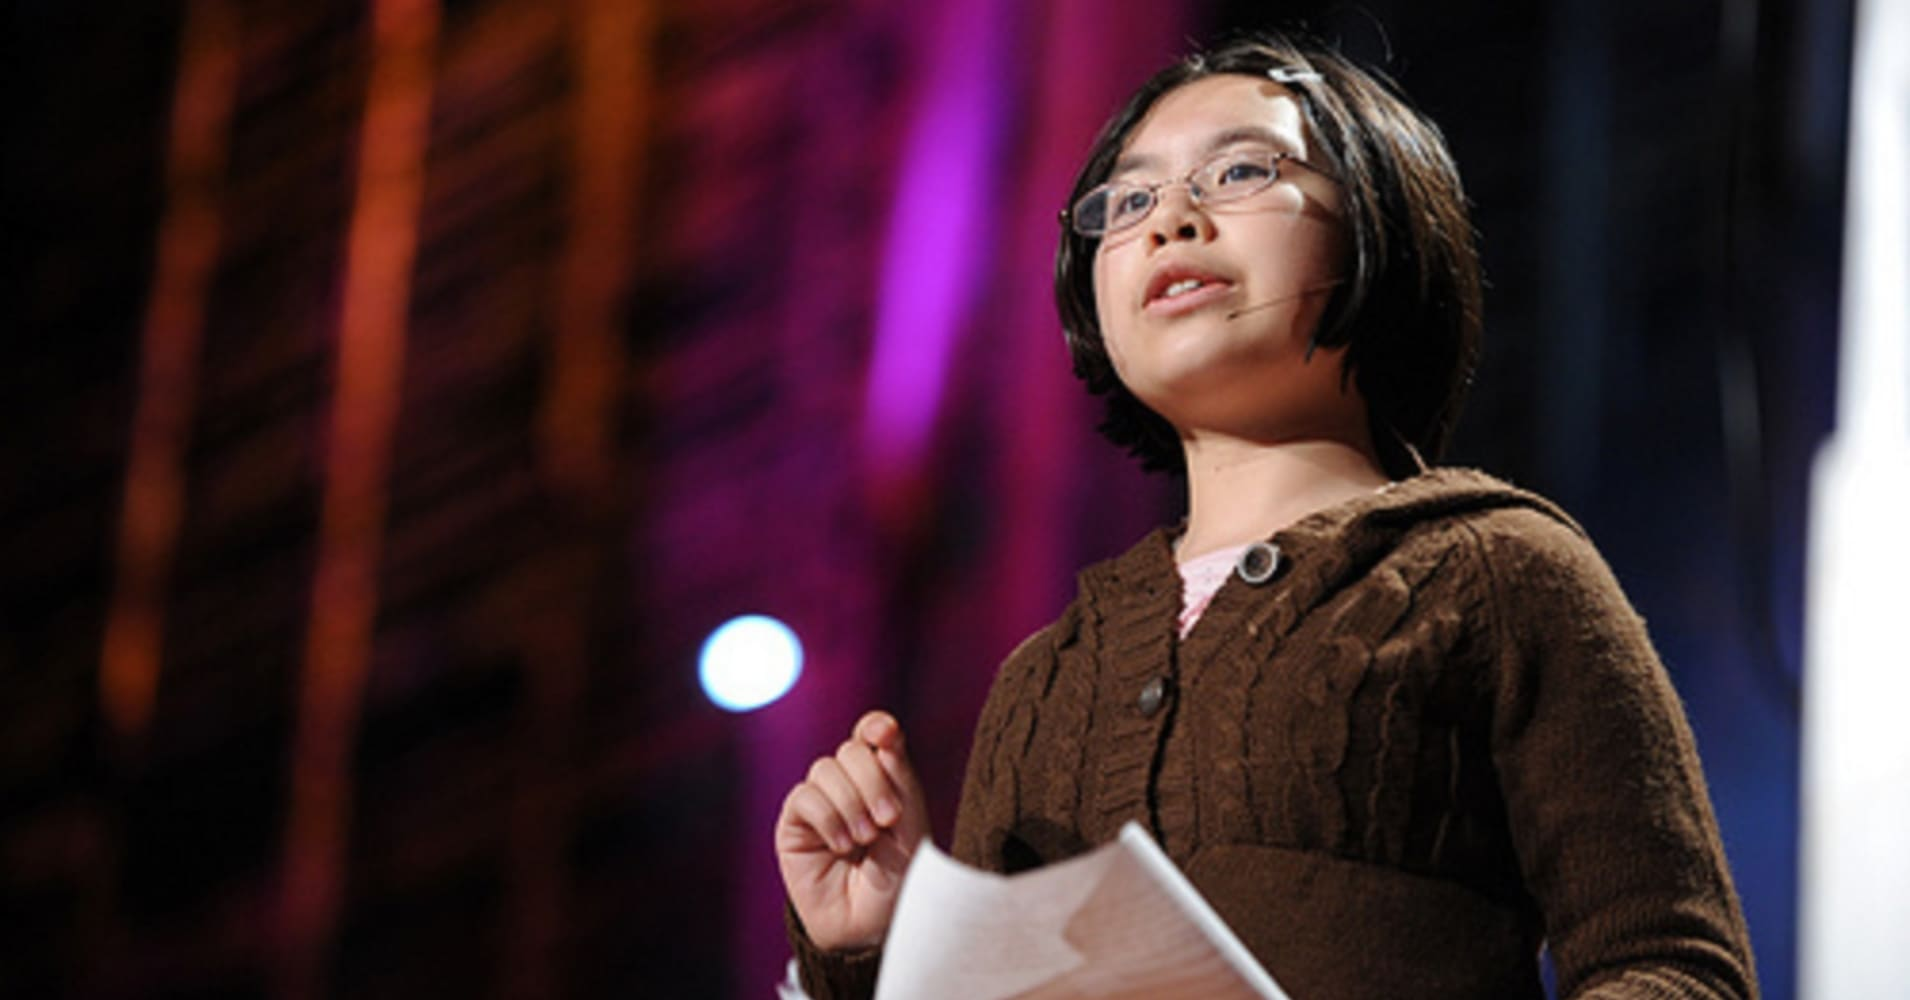 Adora Svitak at age 12 on the TED stage